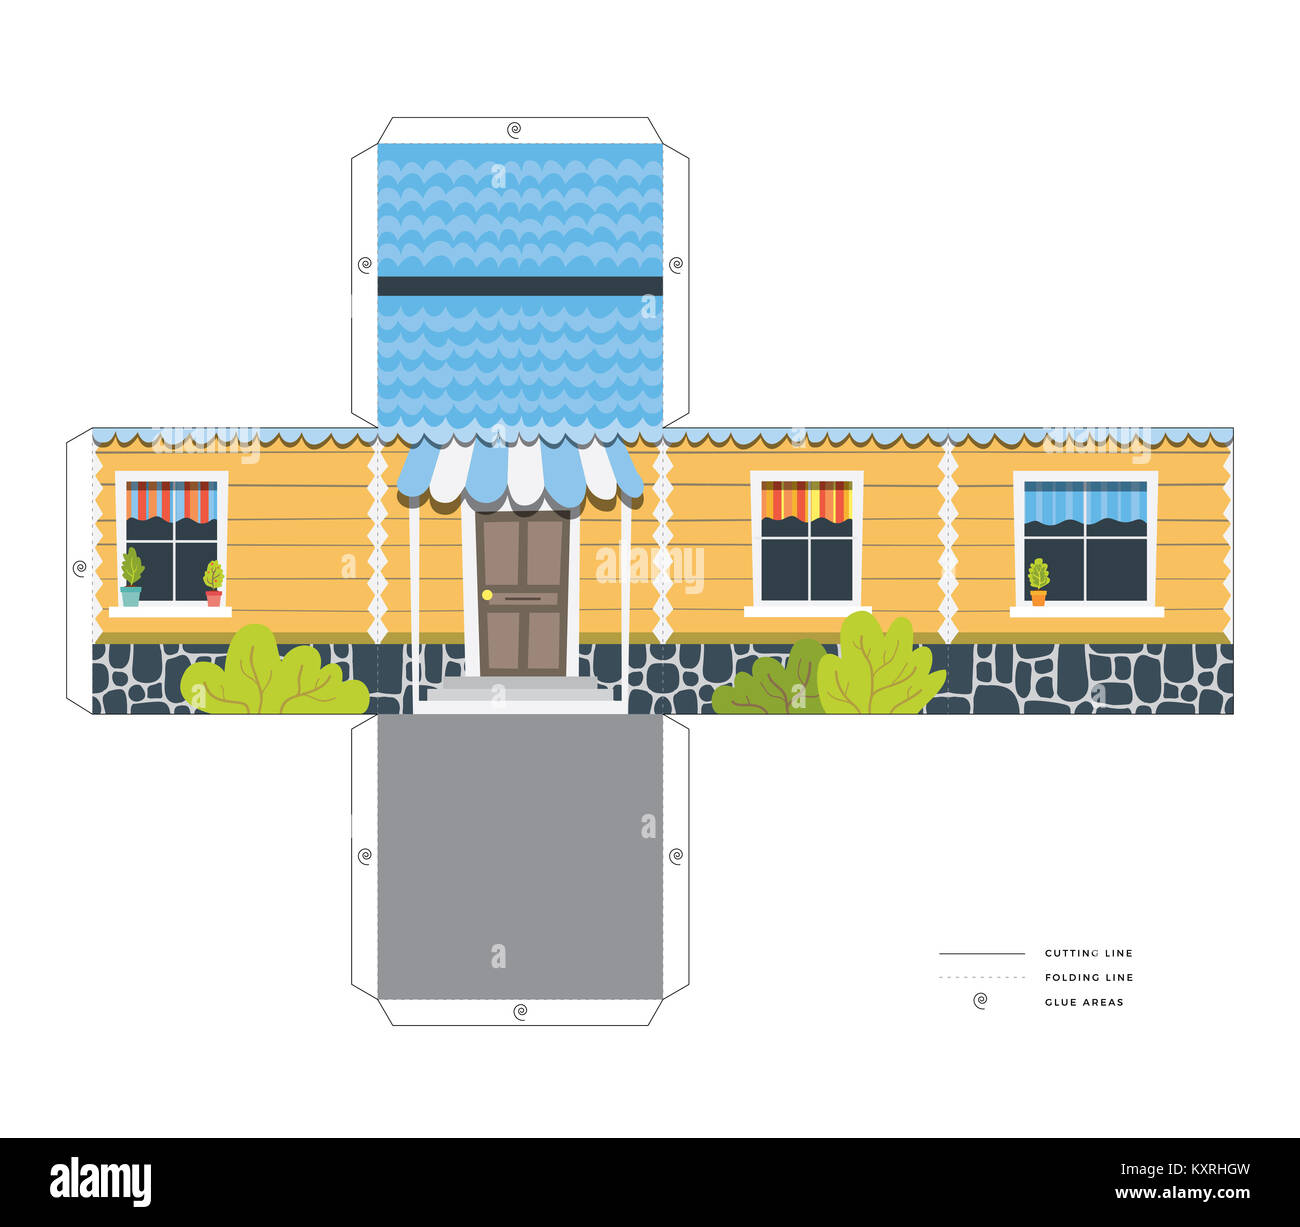 Paper Toy House Stock Photos & Paper Toy House Stock Images